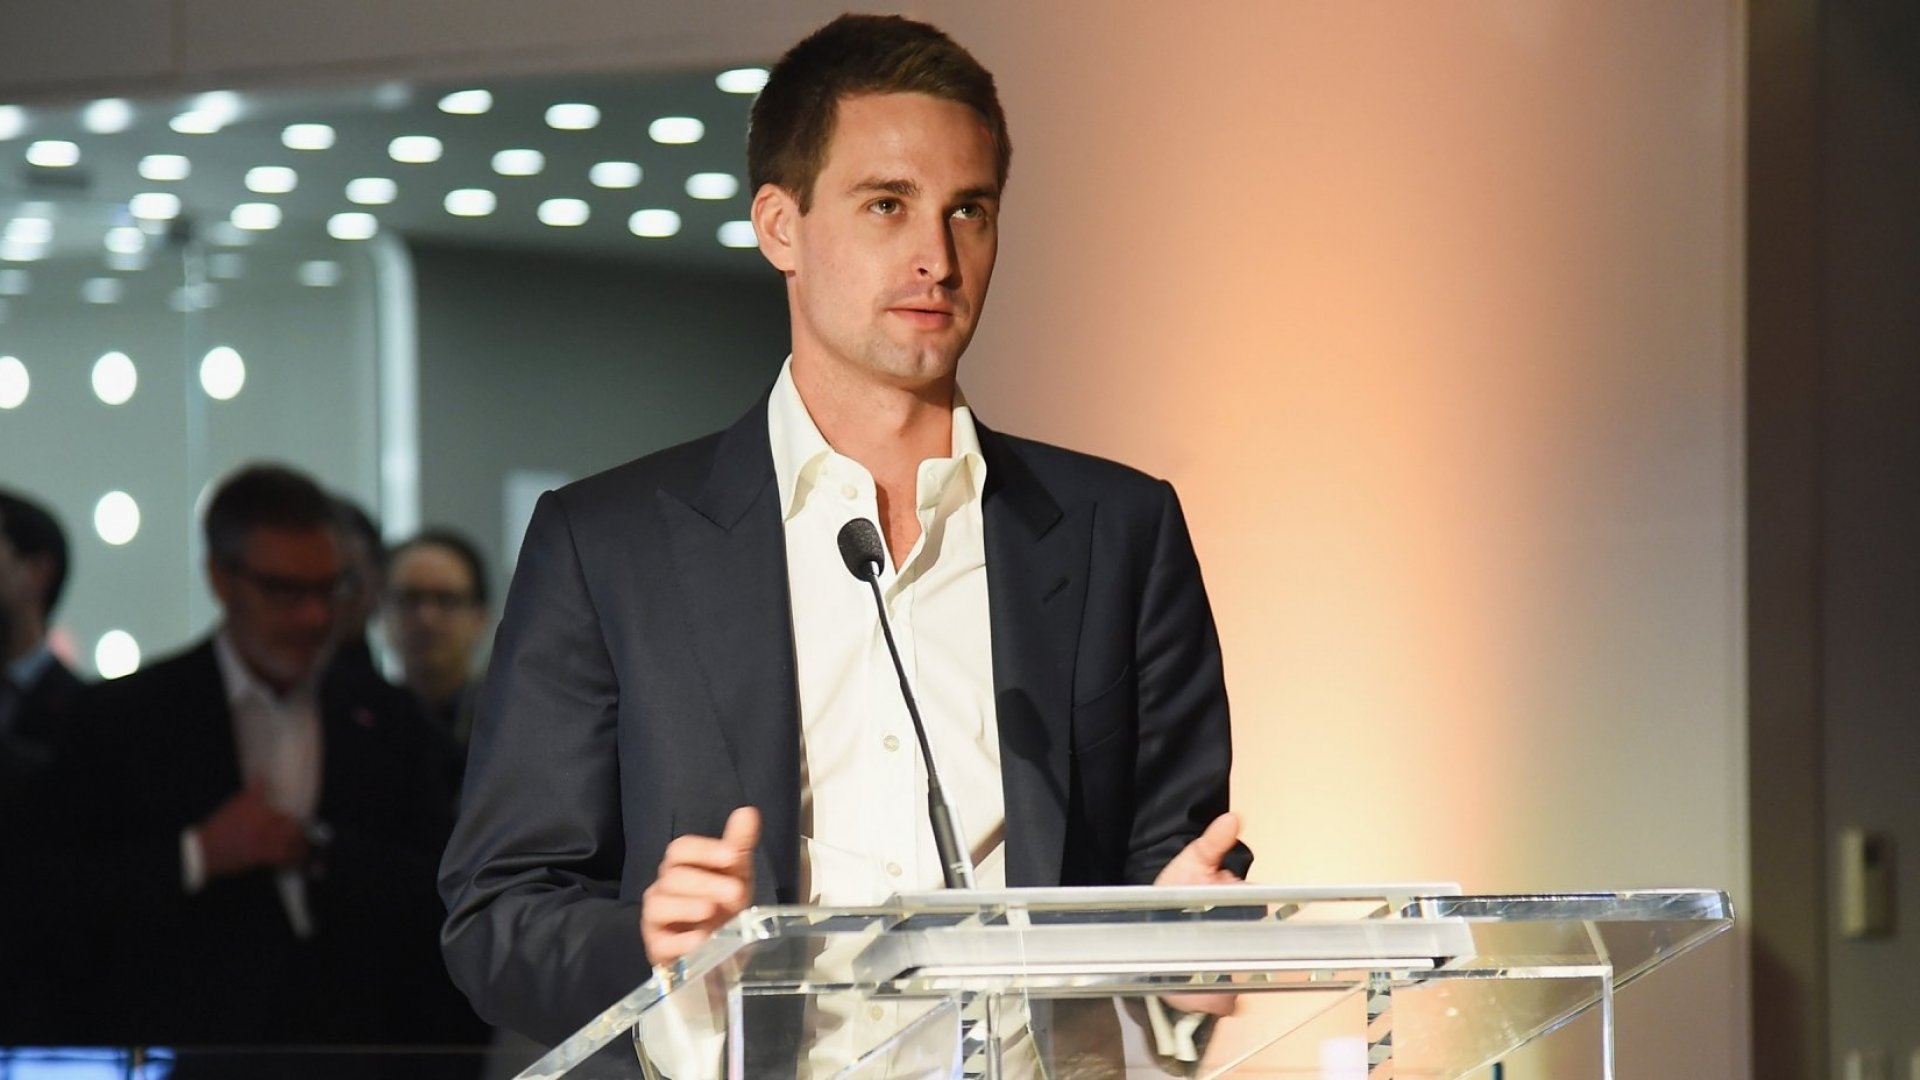 Report: Snapchat Parent Confidentially Files for IPO